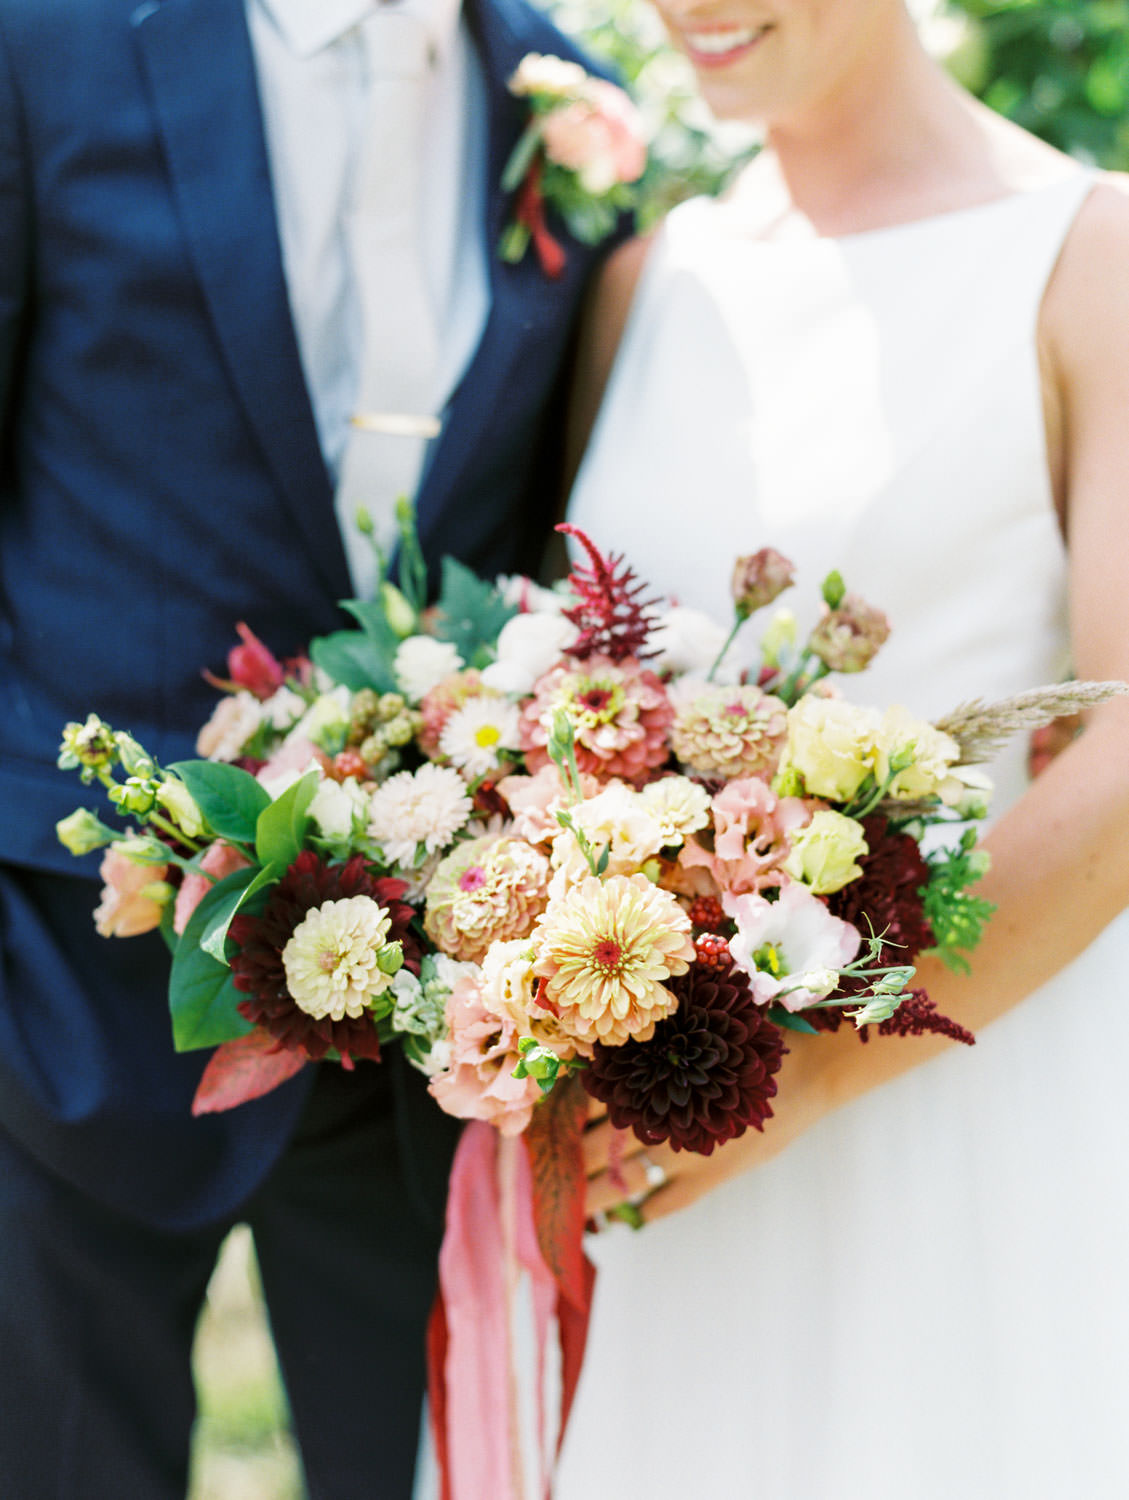 Bride in a classic Mikaella Bridal gown smiling at the camera with the groom in a navy linen suit. Bridal bouquet with ivory, peach, wine, blush flowers and mauve, wine, and blush ribbons. Film photographer Cavin Elizabeth Photography